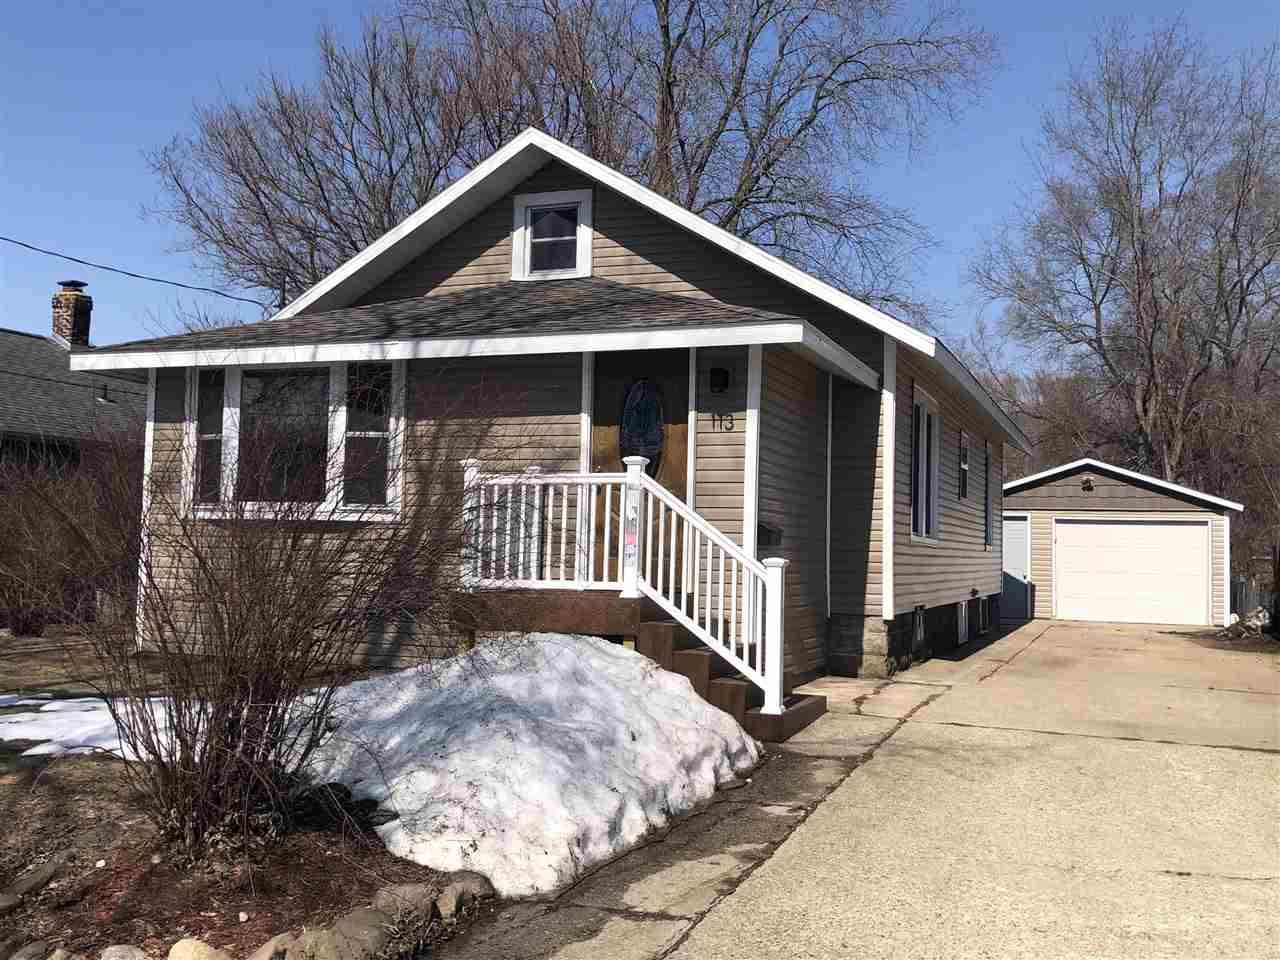 113 E State St, Janesville, WI 53546 - MLS#: 1903761